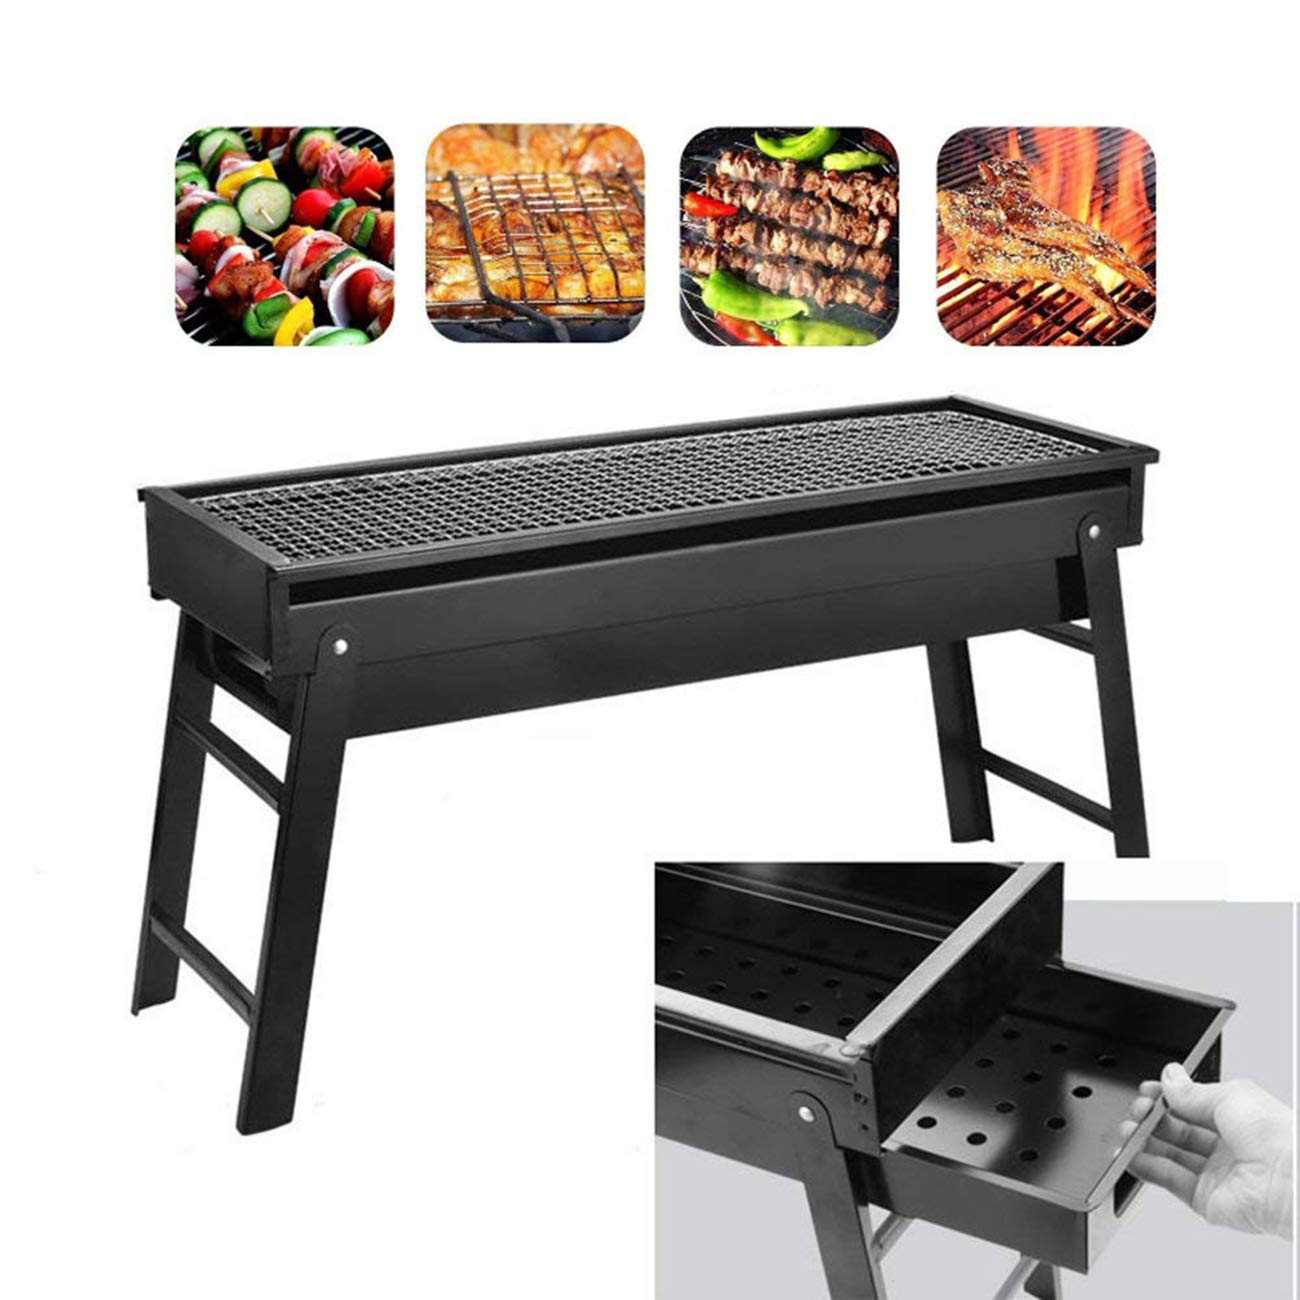 Dyna-Living Charcoal Barbecue Grill, Portable Stainless Steel BBQ Grills Foldable Charcoal Grill for Outdoor Camping Picnics Garden Cooking Vegetables Burgers Fish Shrimp Steaks